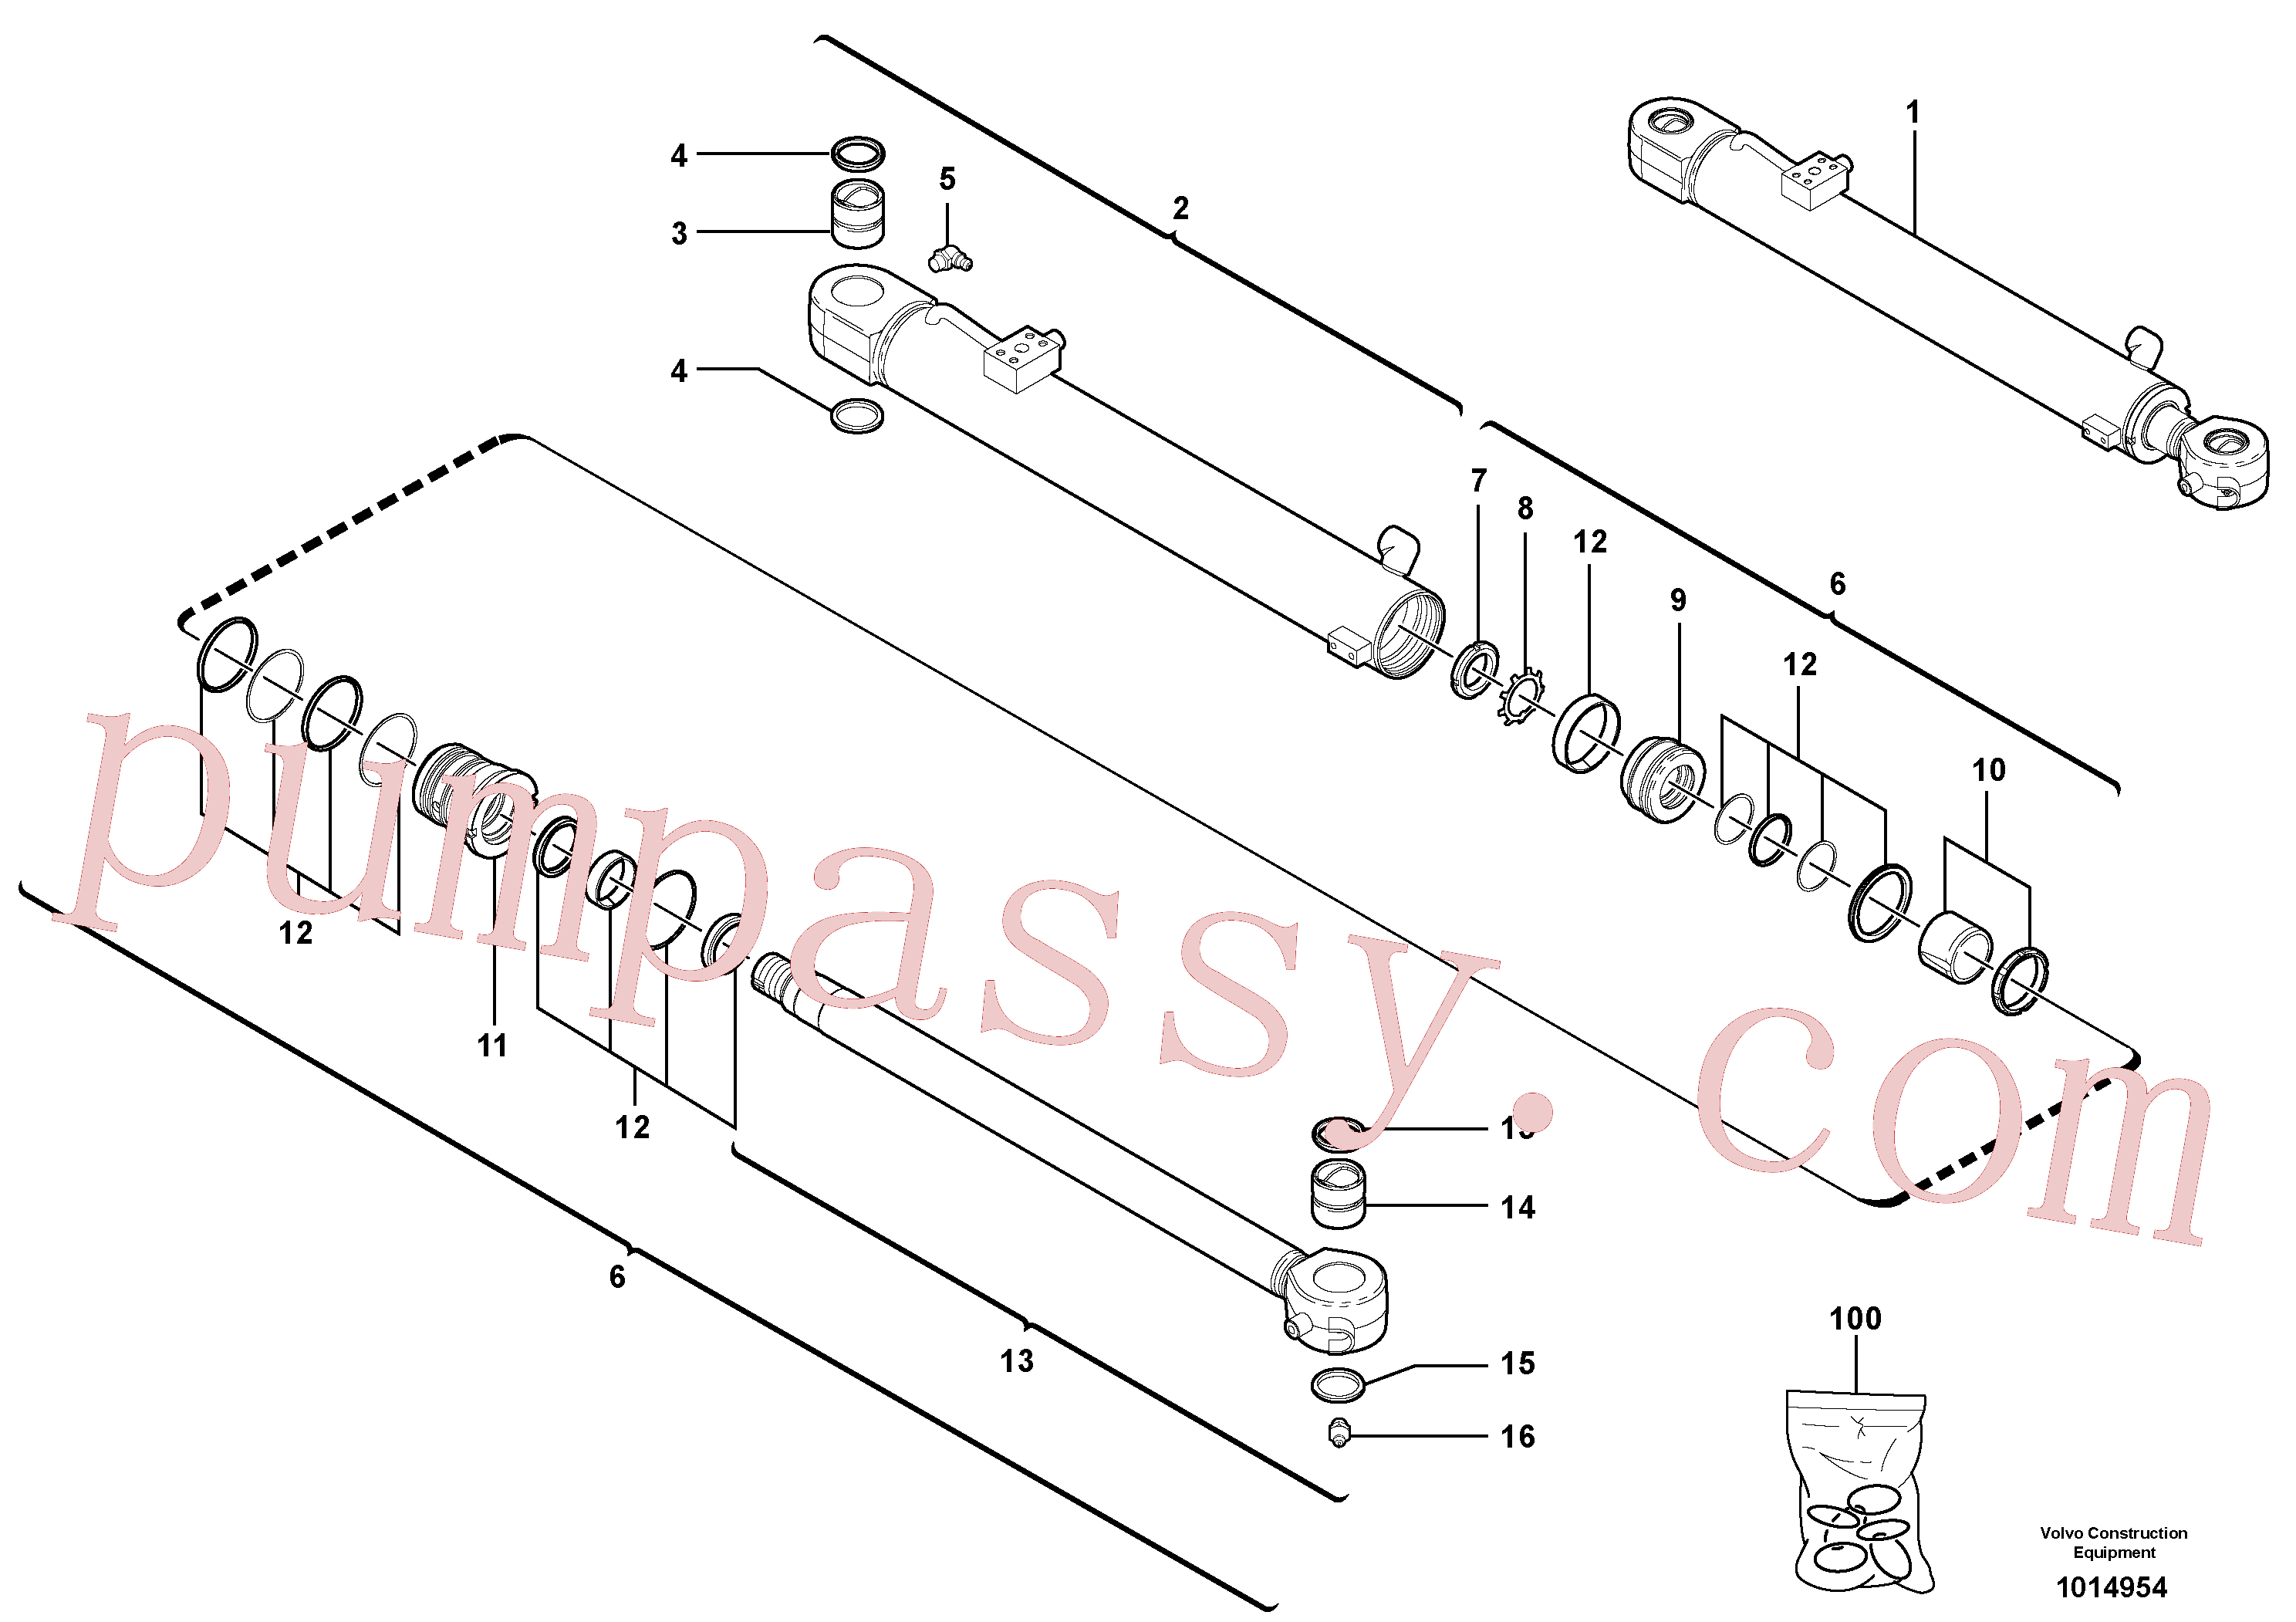 VOE11988921 for Volvo Boom cylinder(1014954 assembly)